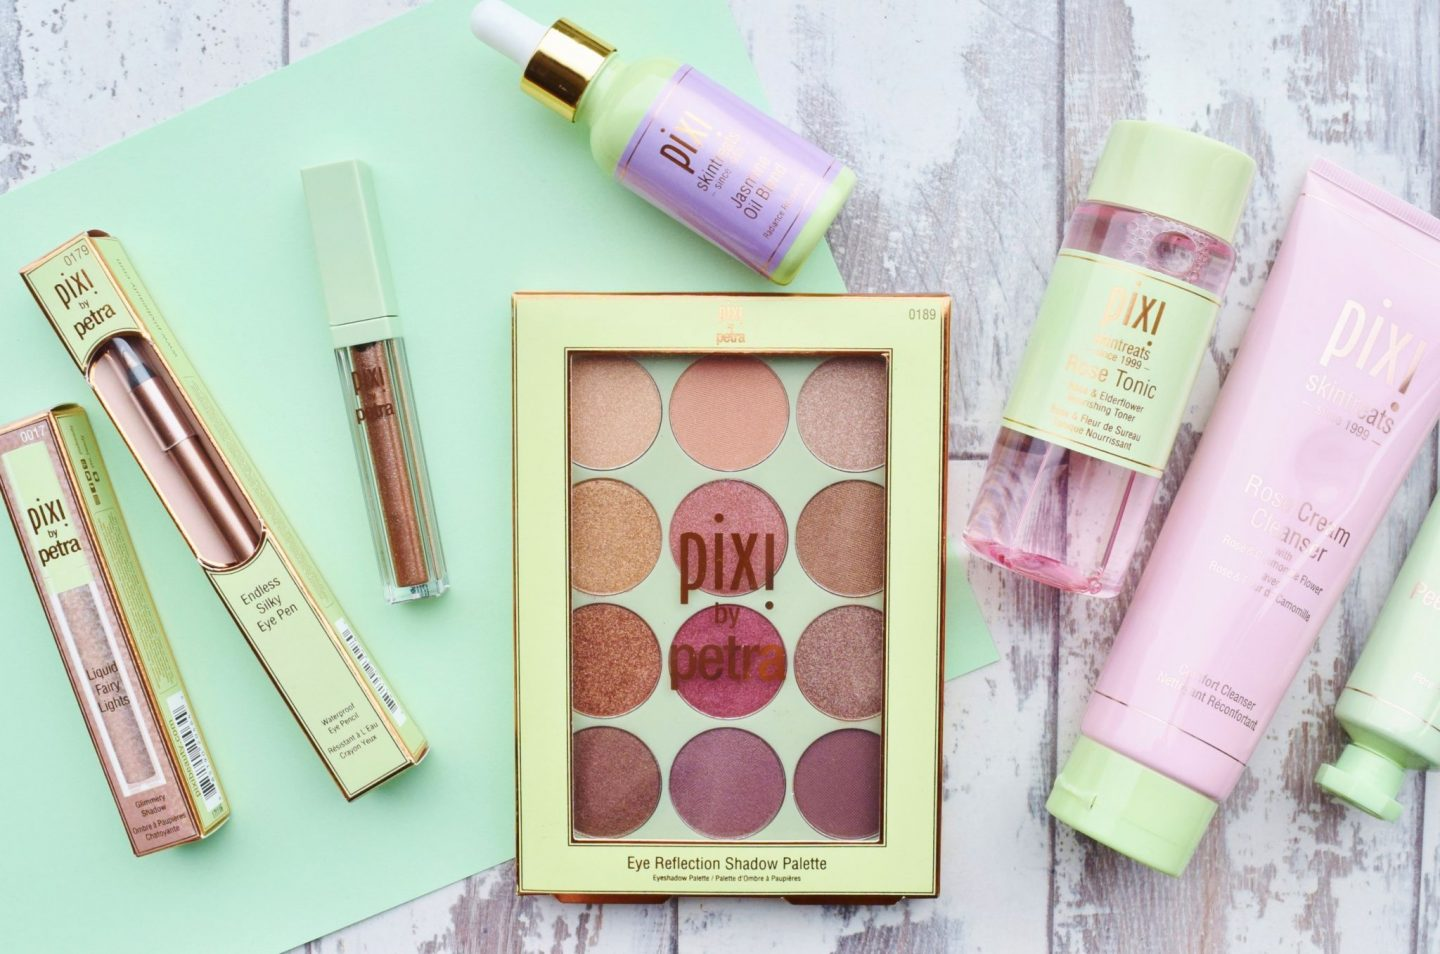 pixi beauty spring 2018 releases